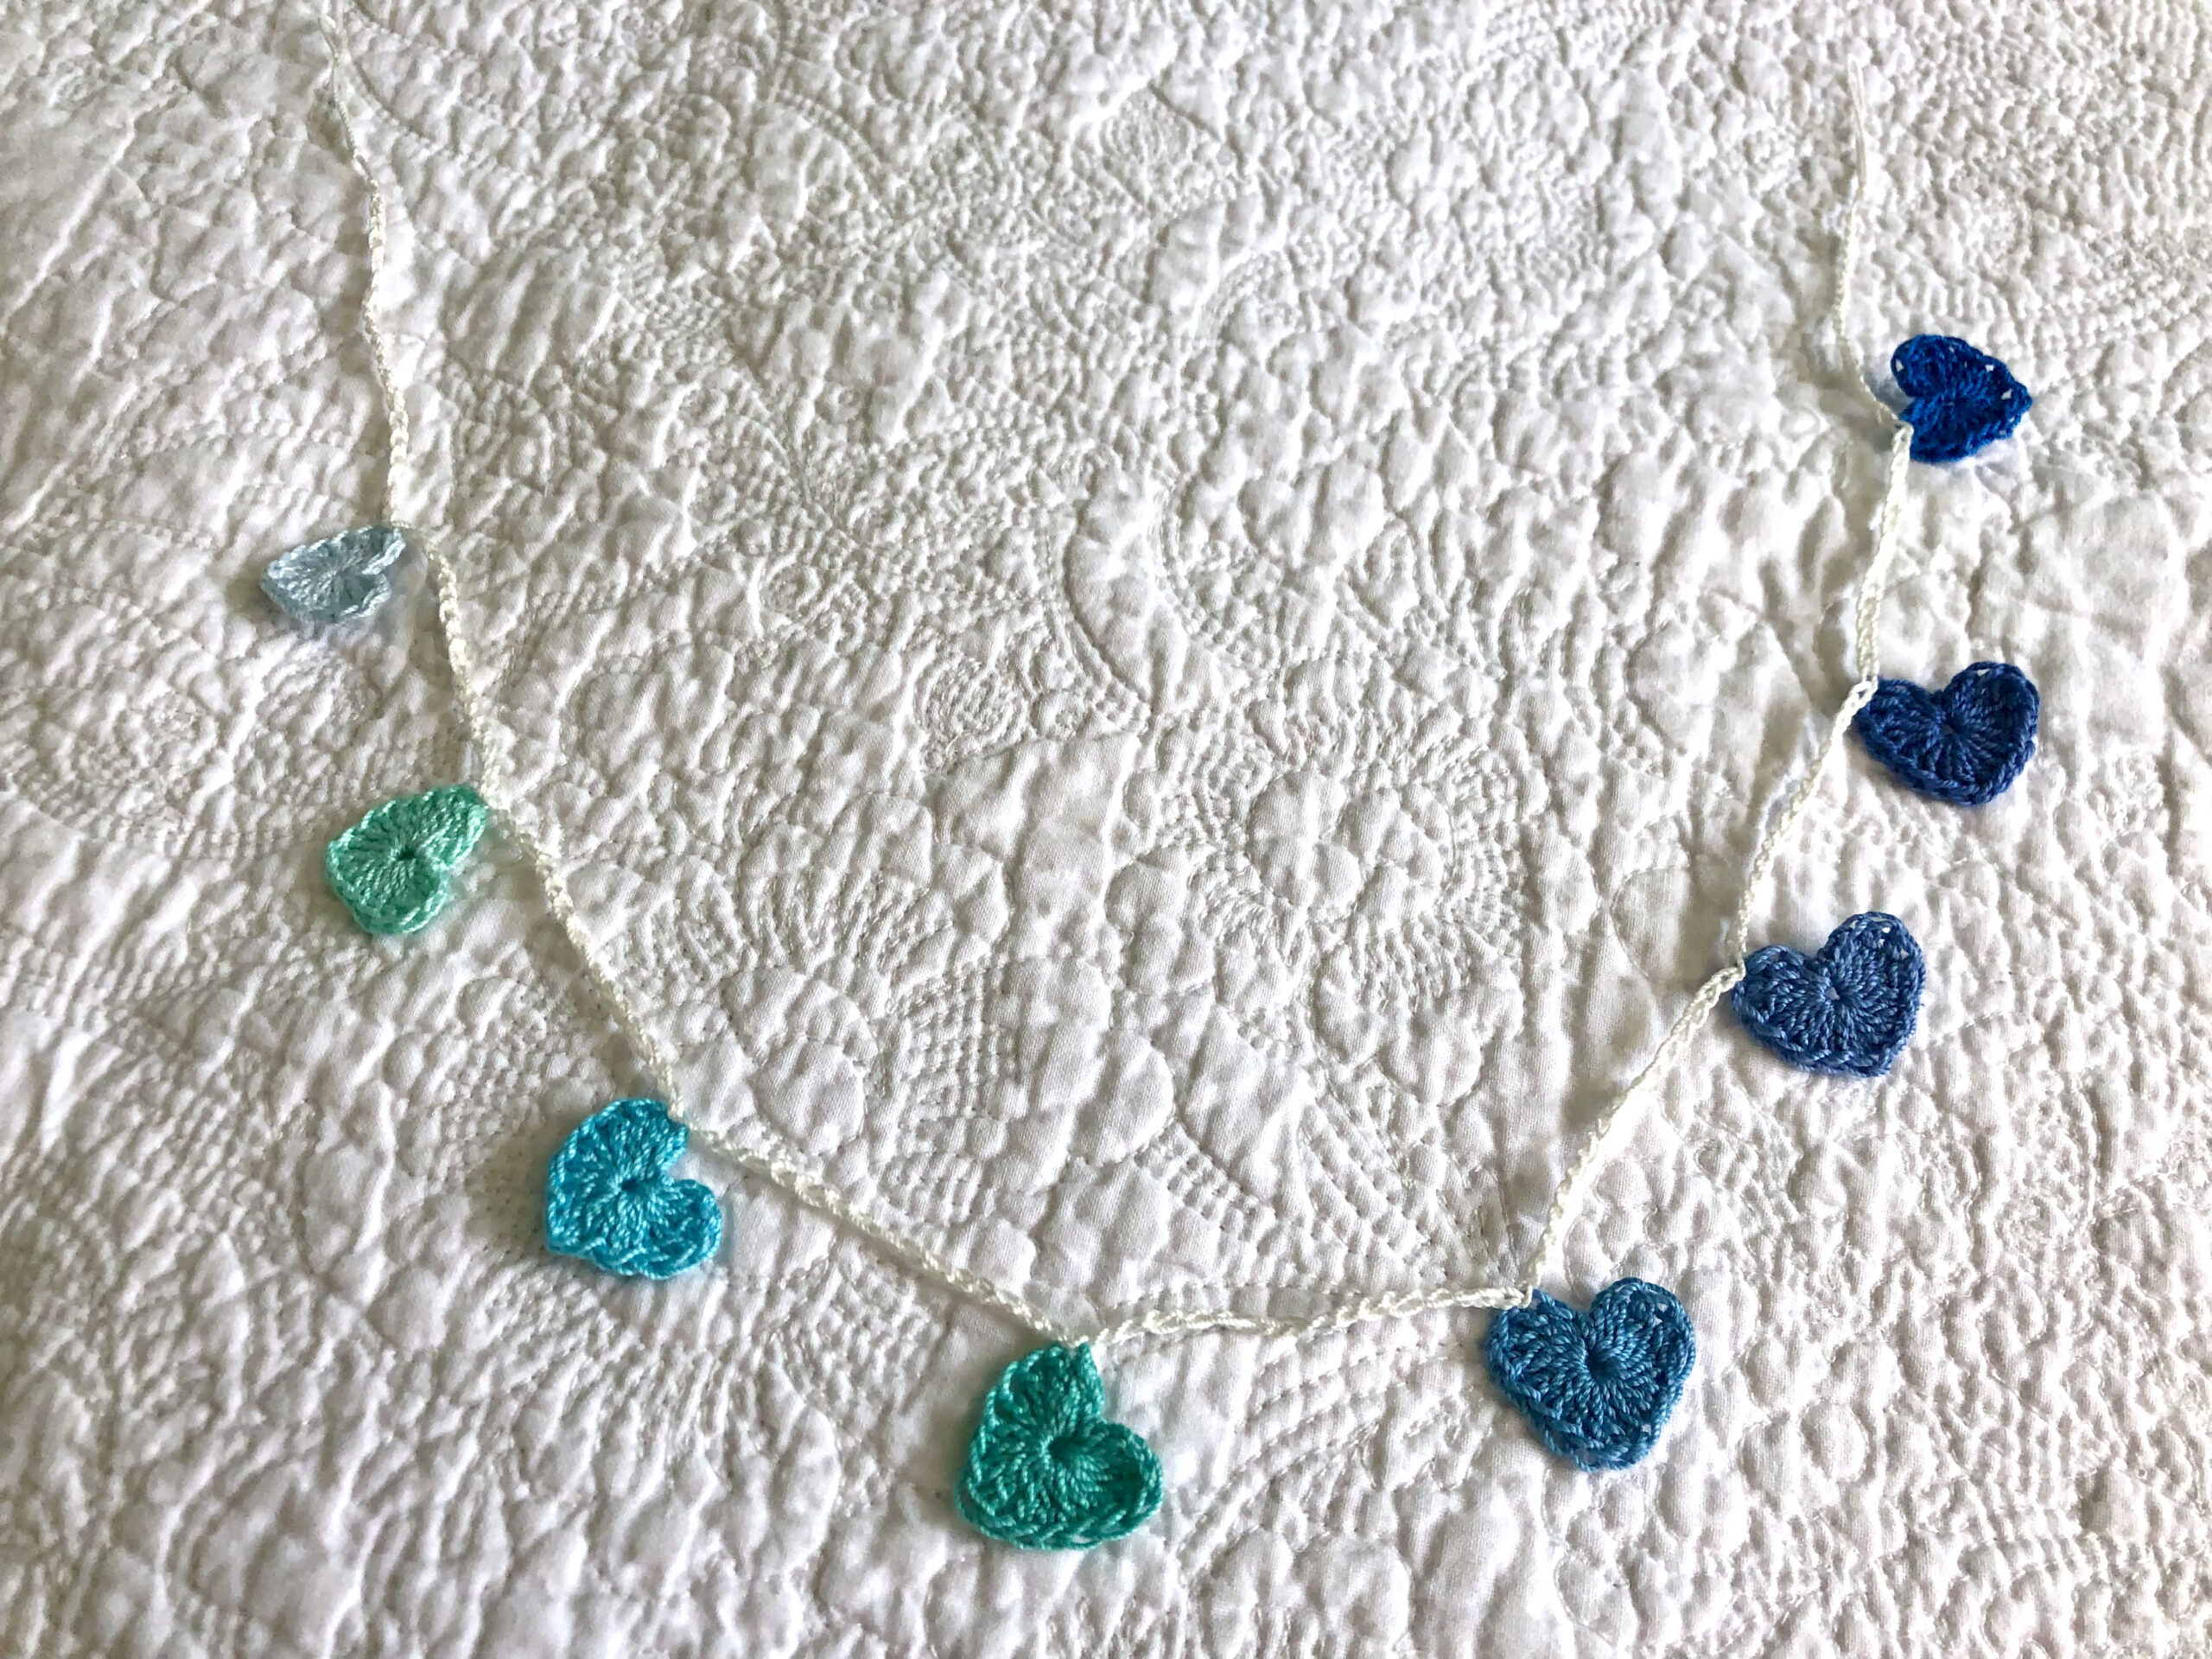 Tiny hearts garland in blues and greens.